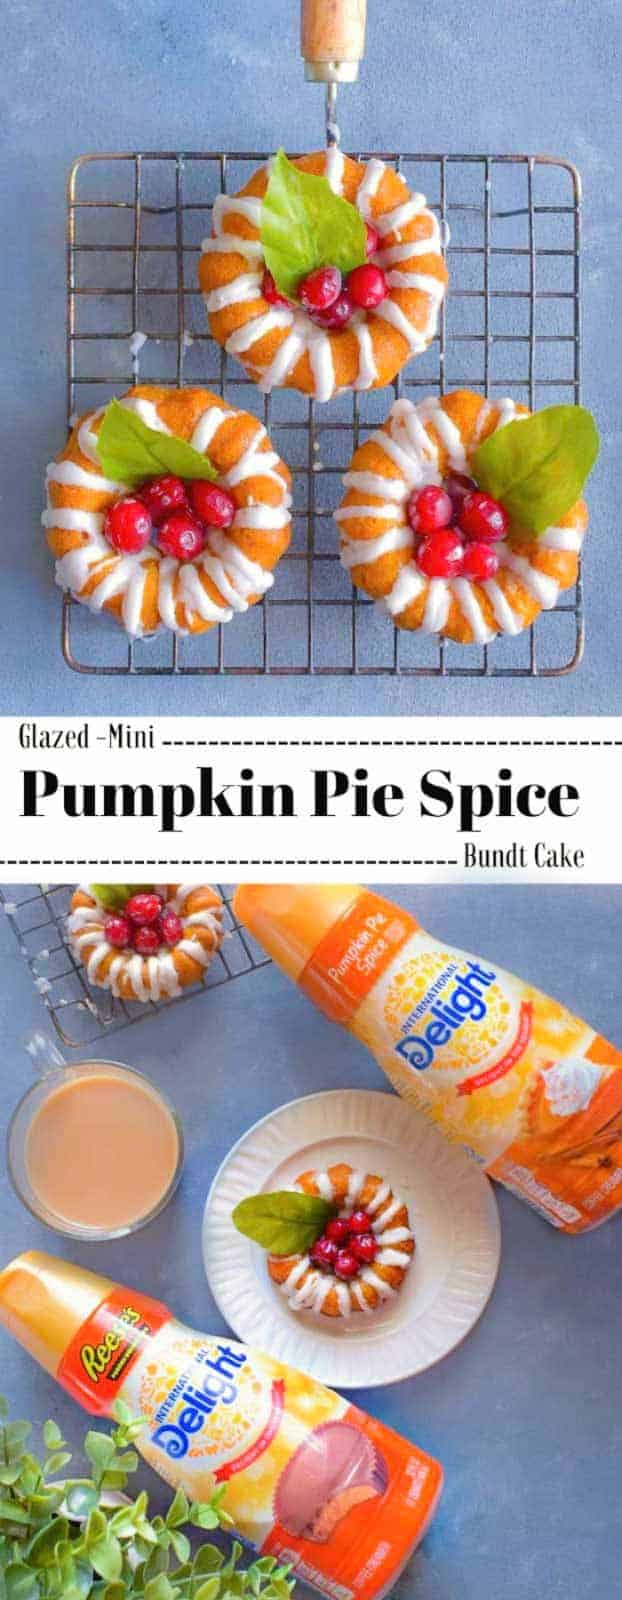 Glazed Mini Pumpkin Pie Spice Bundt Cake: #pumpkin #pie #spice #bundt #mini #DelightfulMoments #ad @walmart